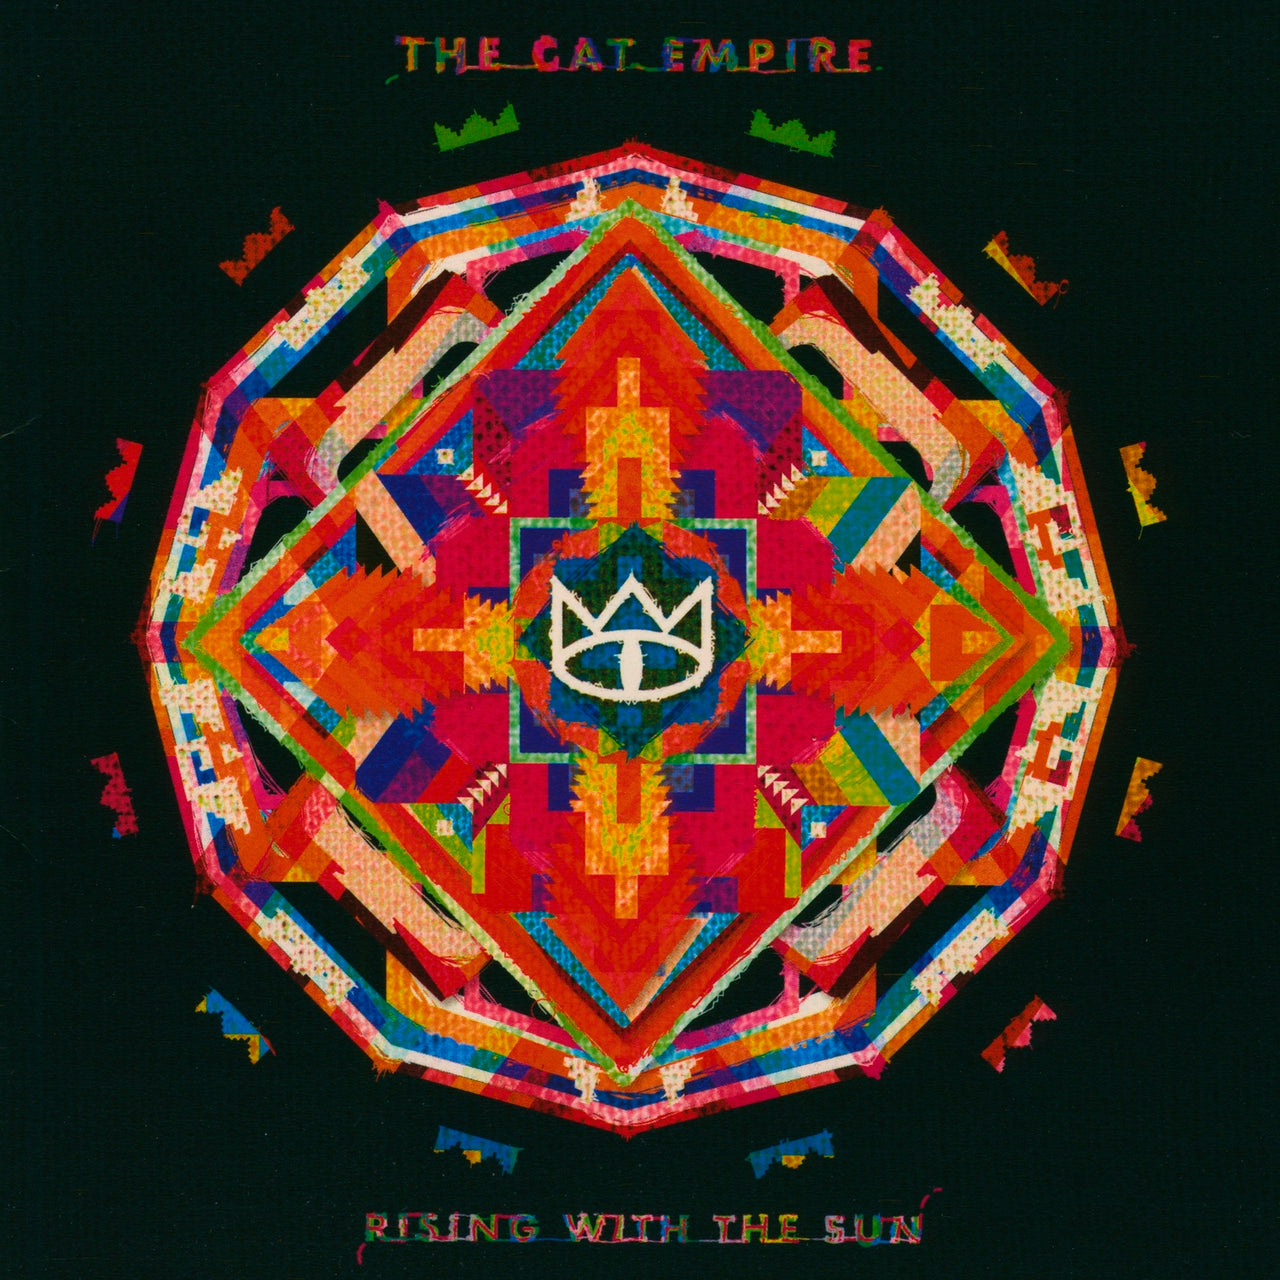 Cat Empire (The) : Rising With The Sun  CD